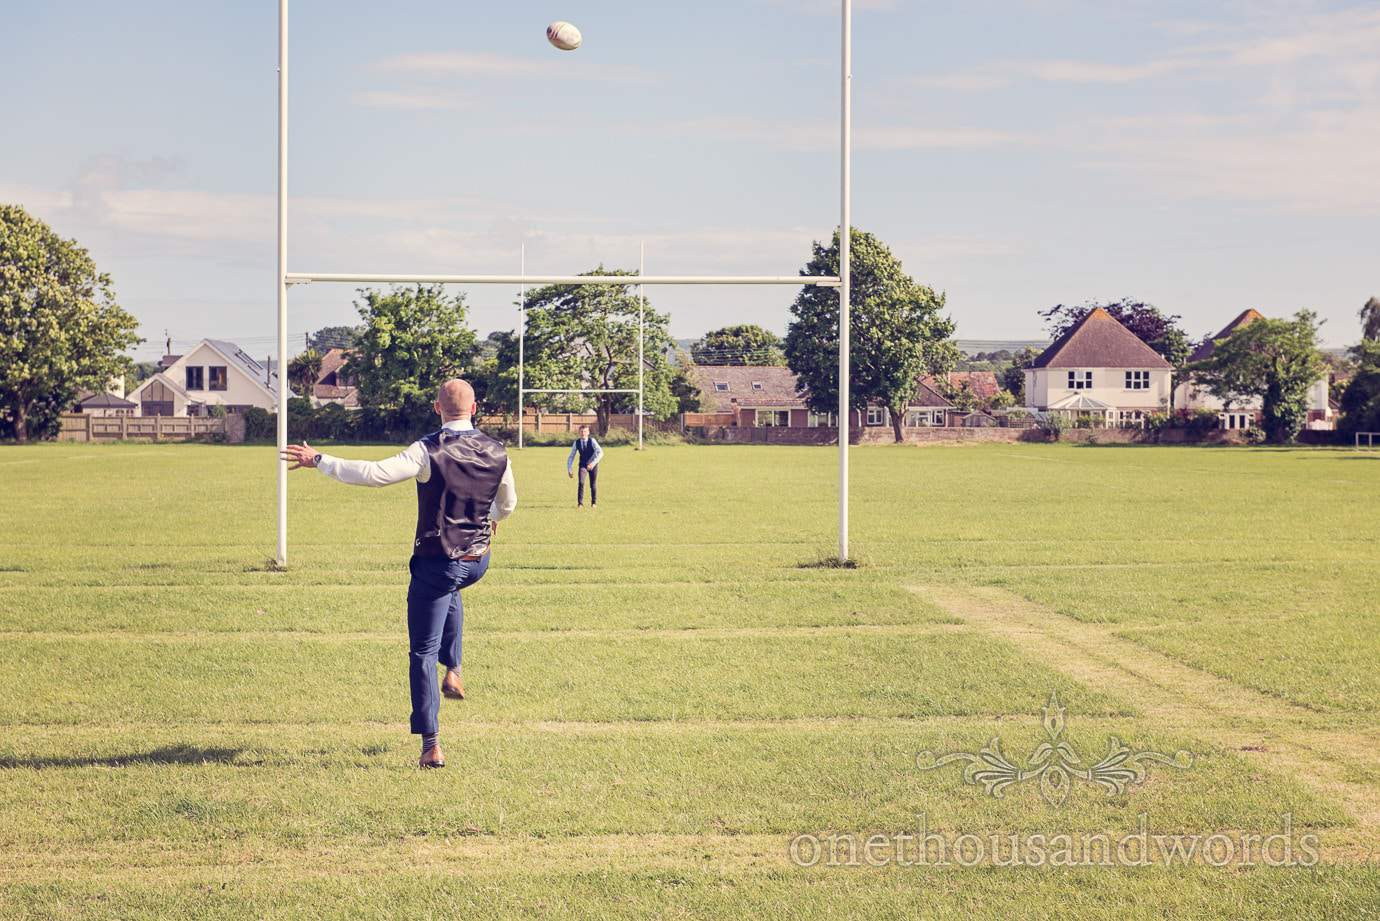 Wedding guests kick rugby ball over posts at Wareham Rugby Club Wedding